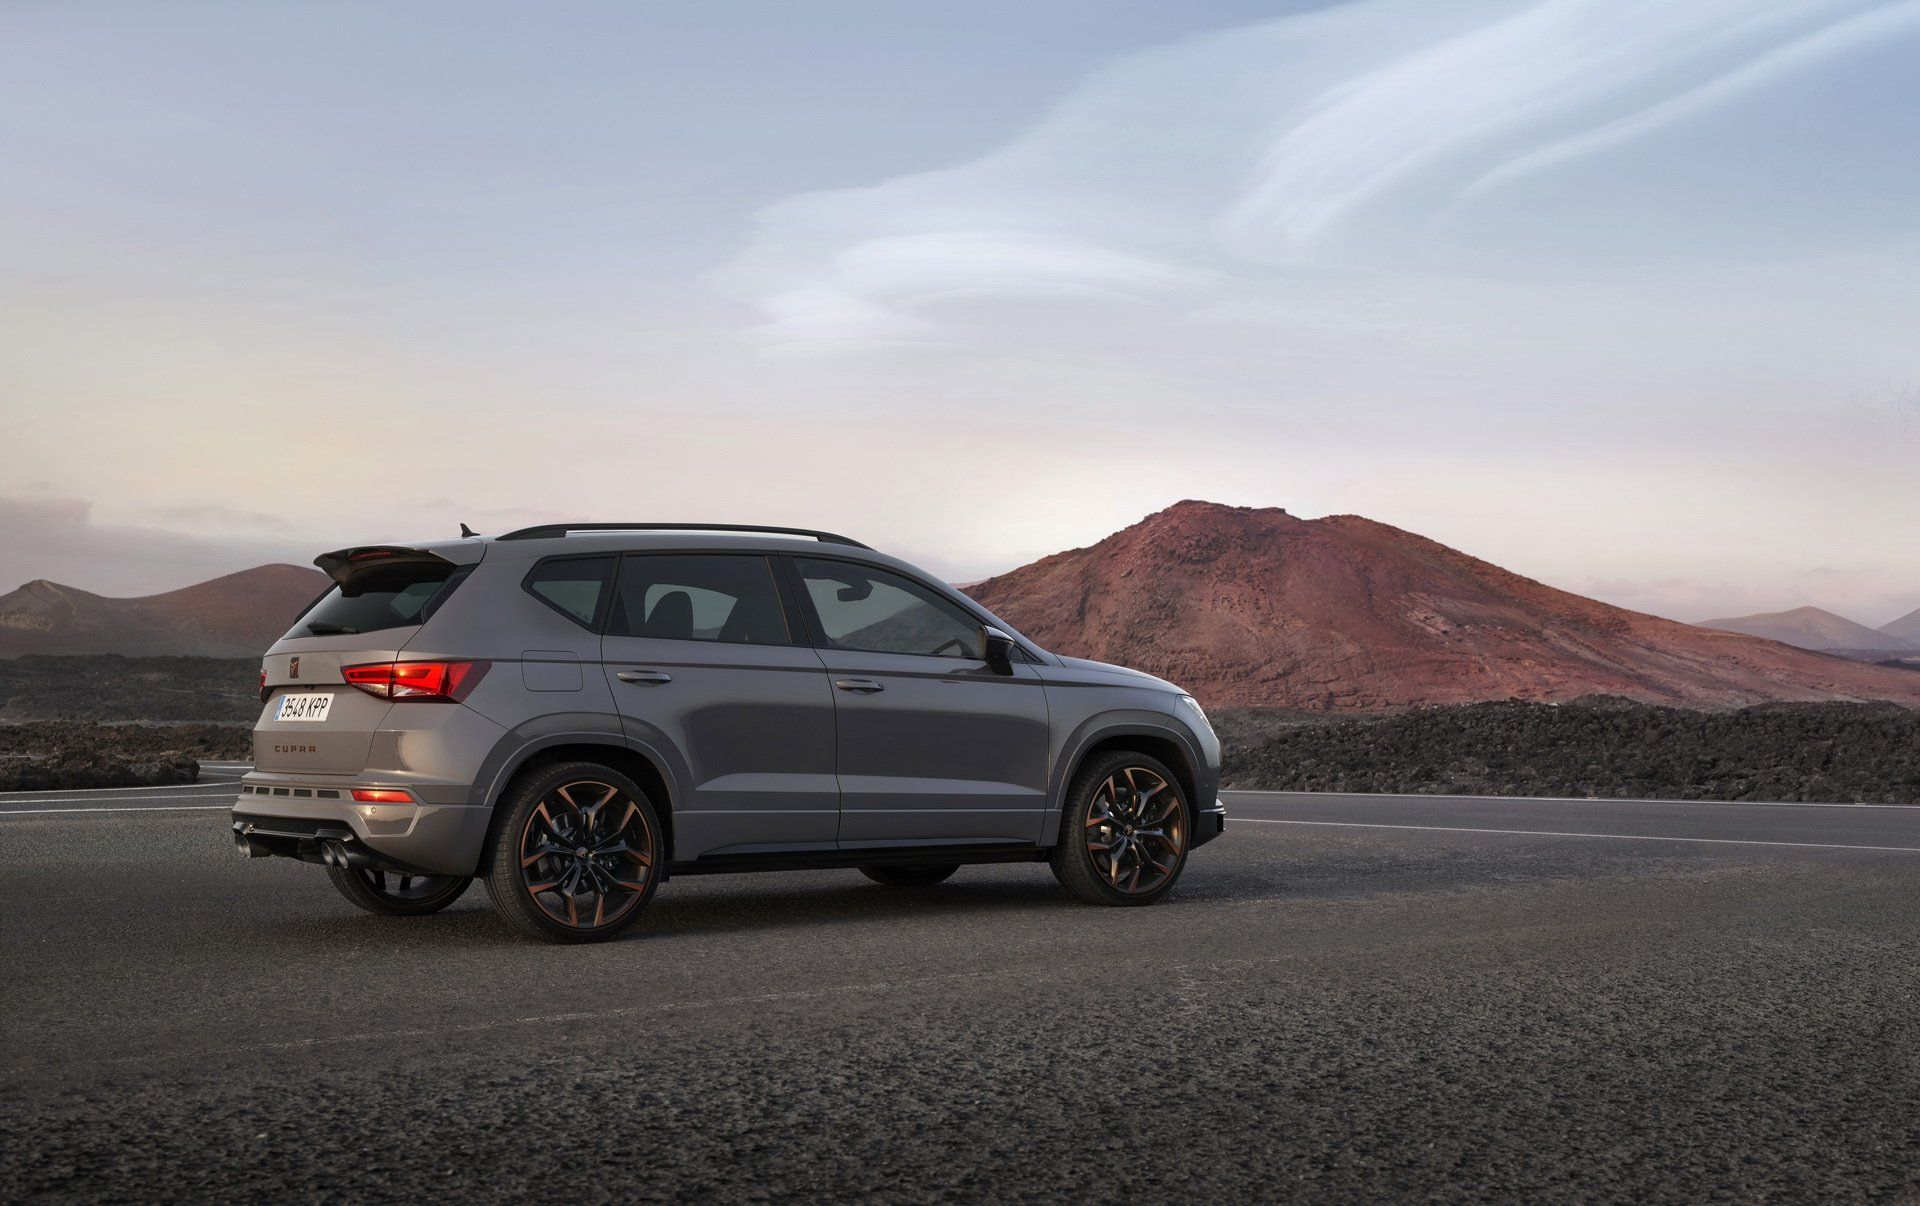 Cupra-Ateca-Limited-Edition-20